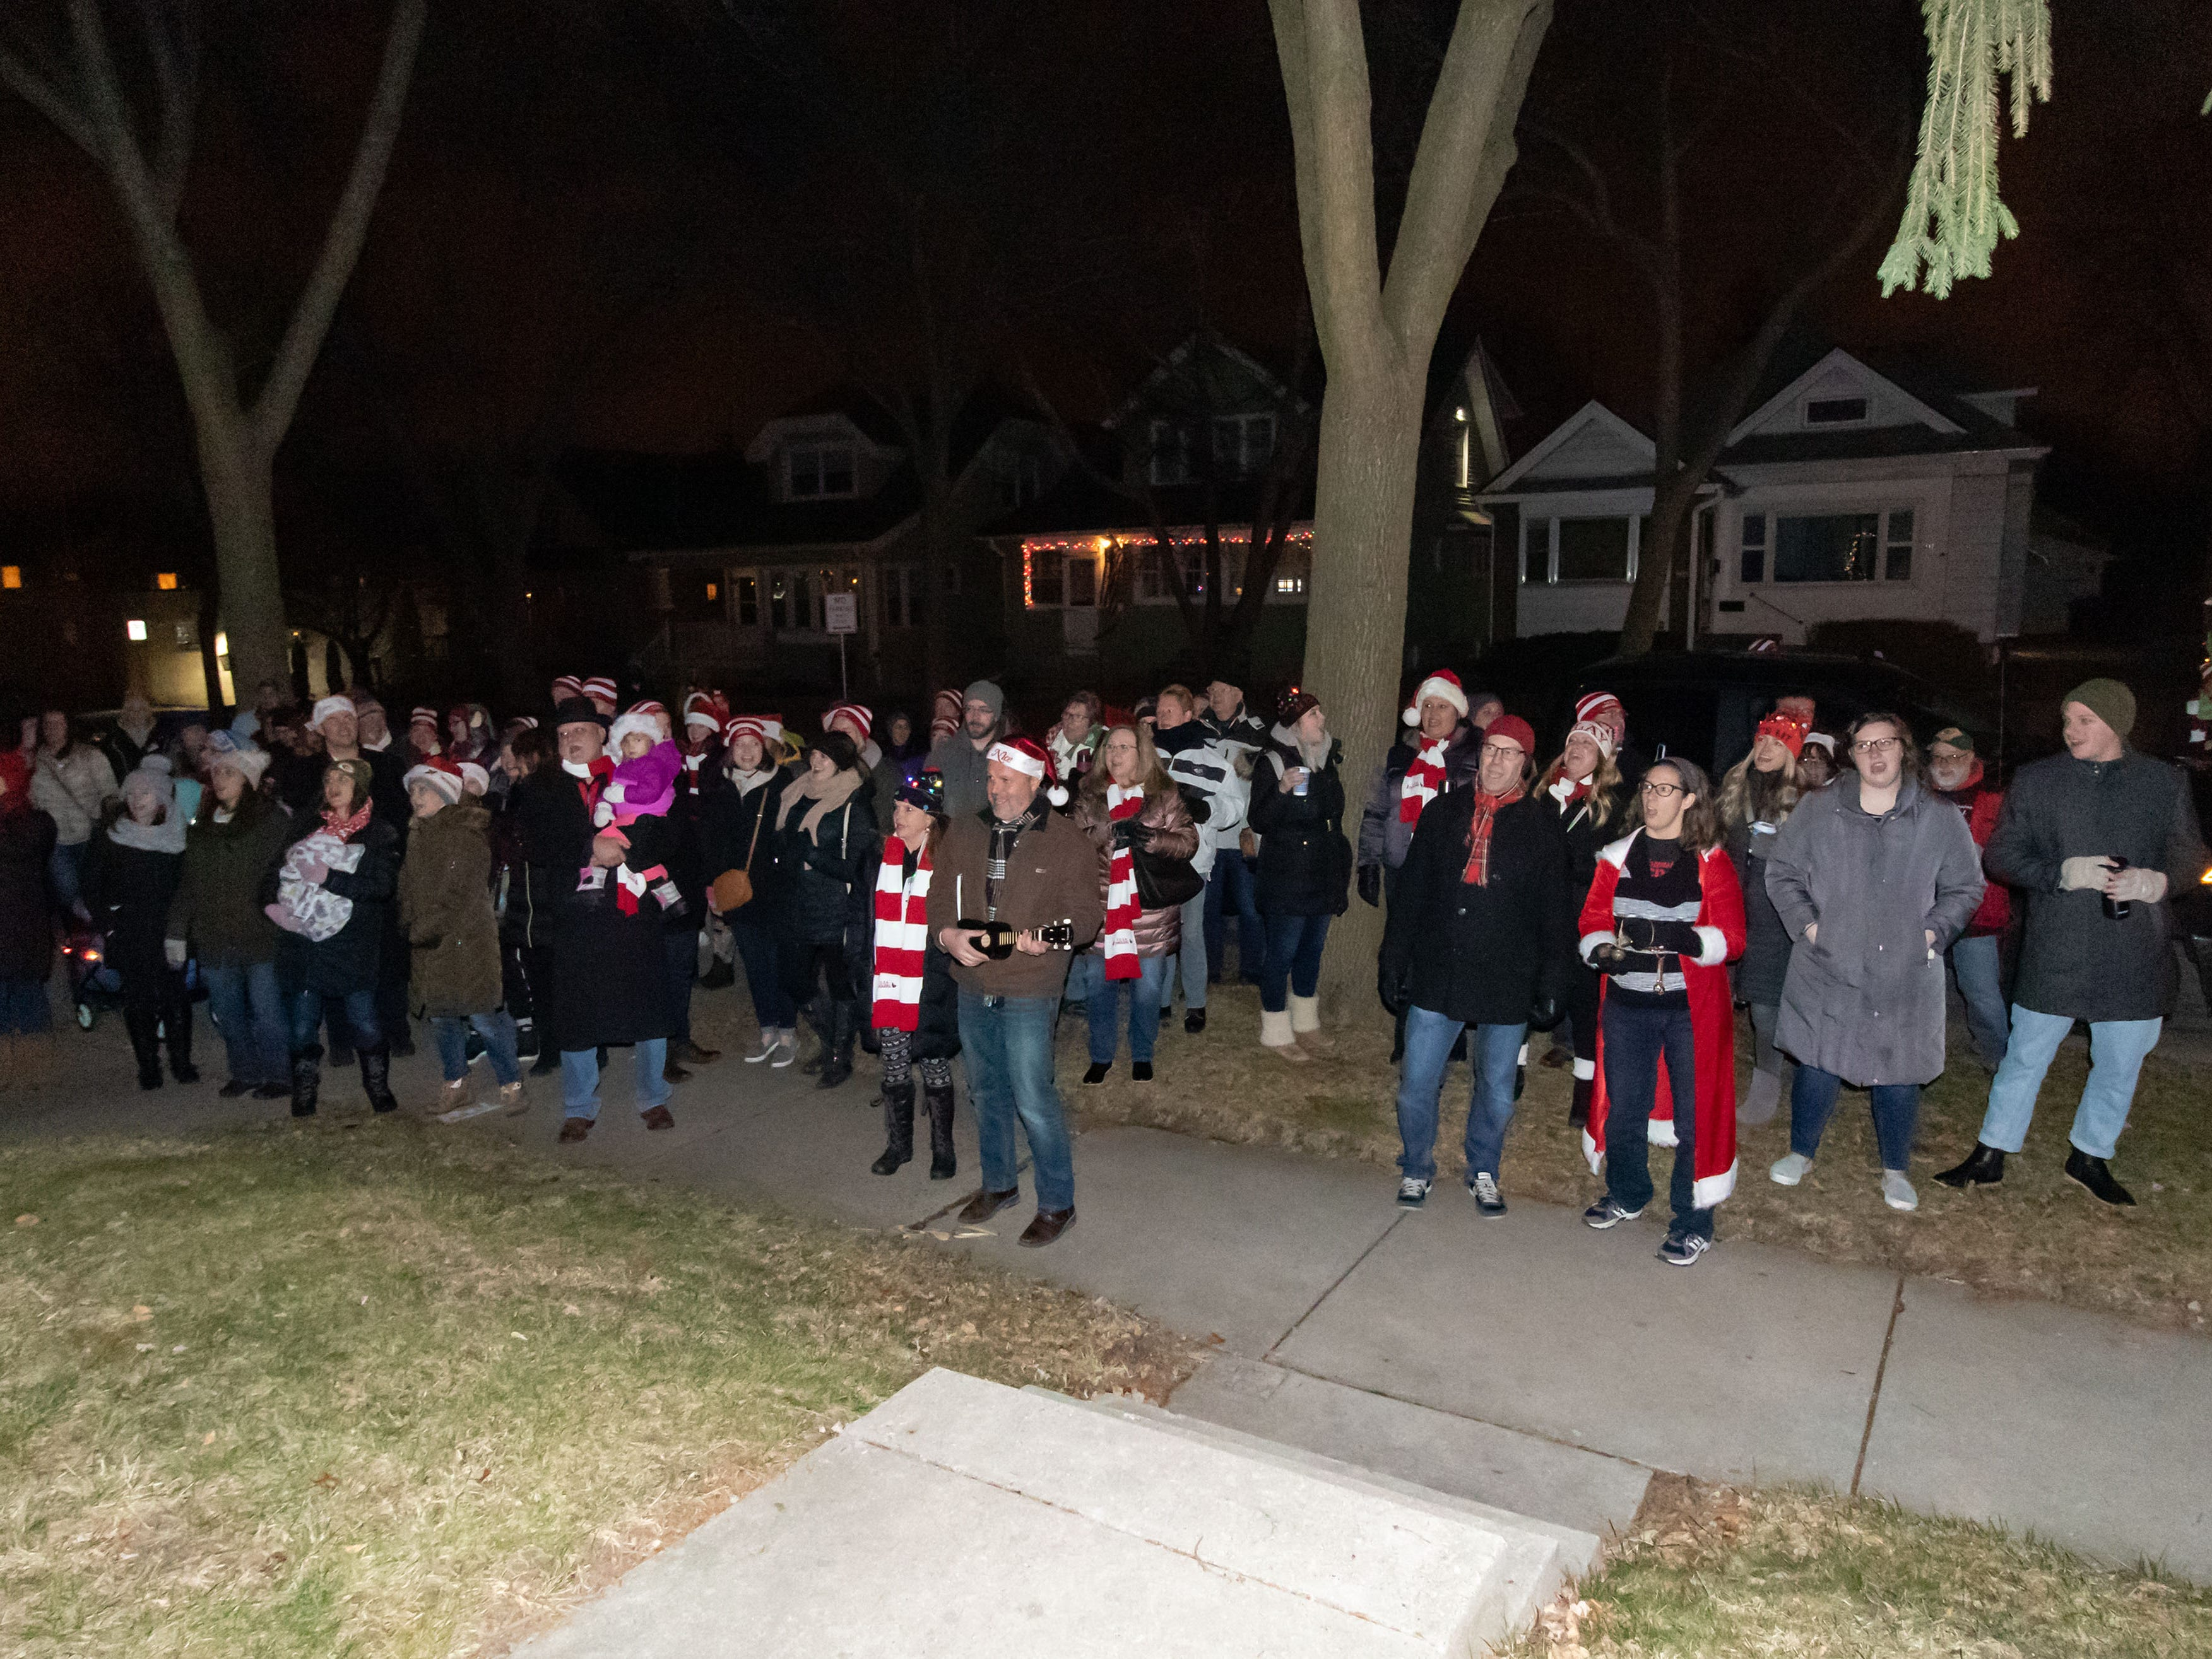 More than one hundred carolers stop to sing at a home on 70th St. in Wauwatosa during Tosa's 7th Annual Christmas Caroling Extravaganza on Saturday, Dec. 22, 2018. The objective of the event is to spread holiday cheer and warm the winter night with song and folly.